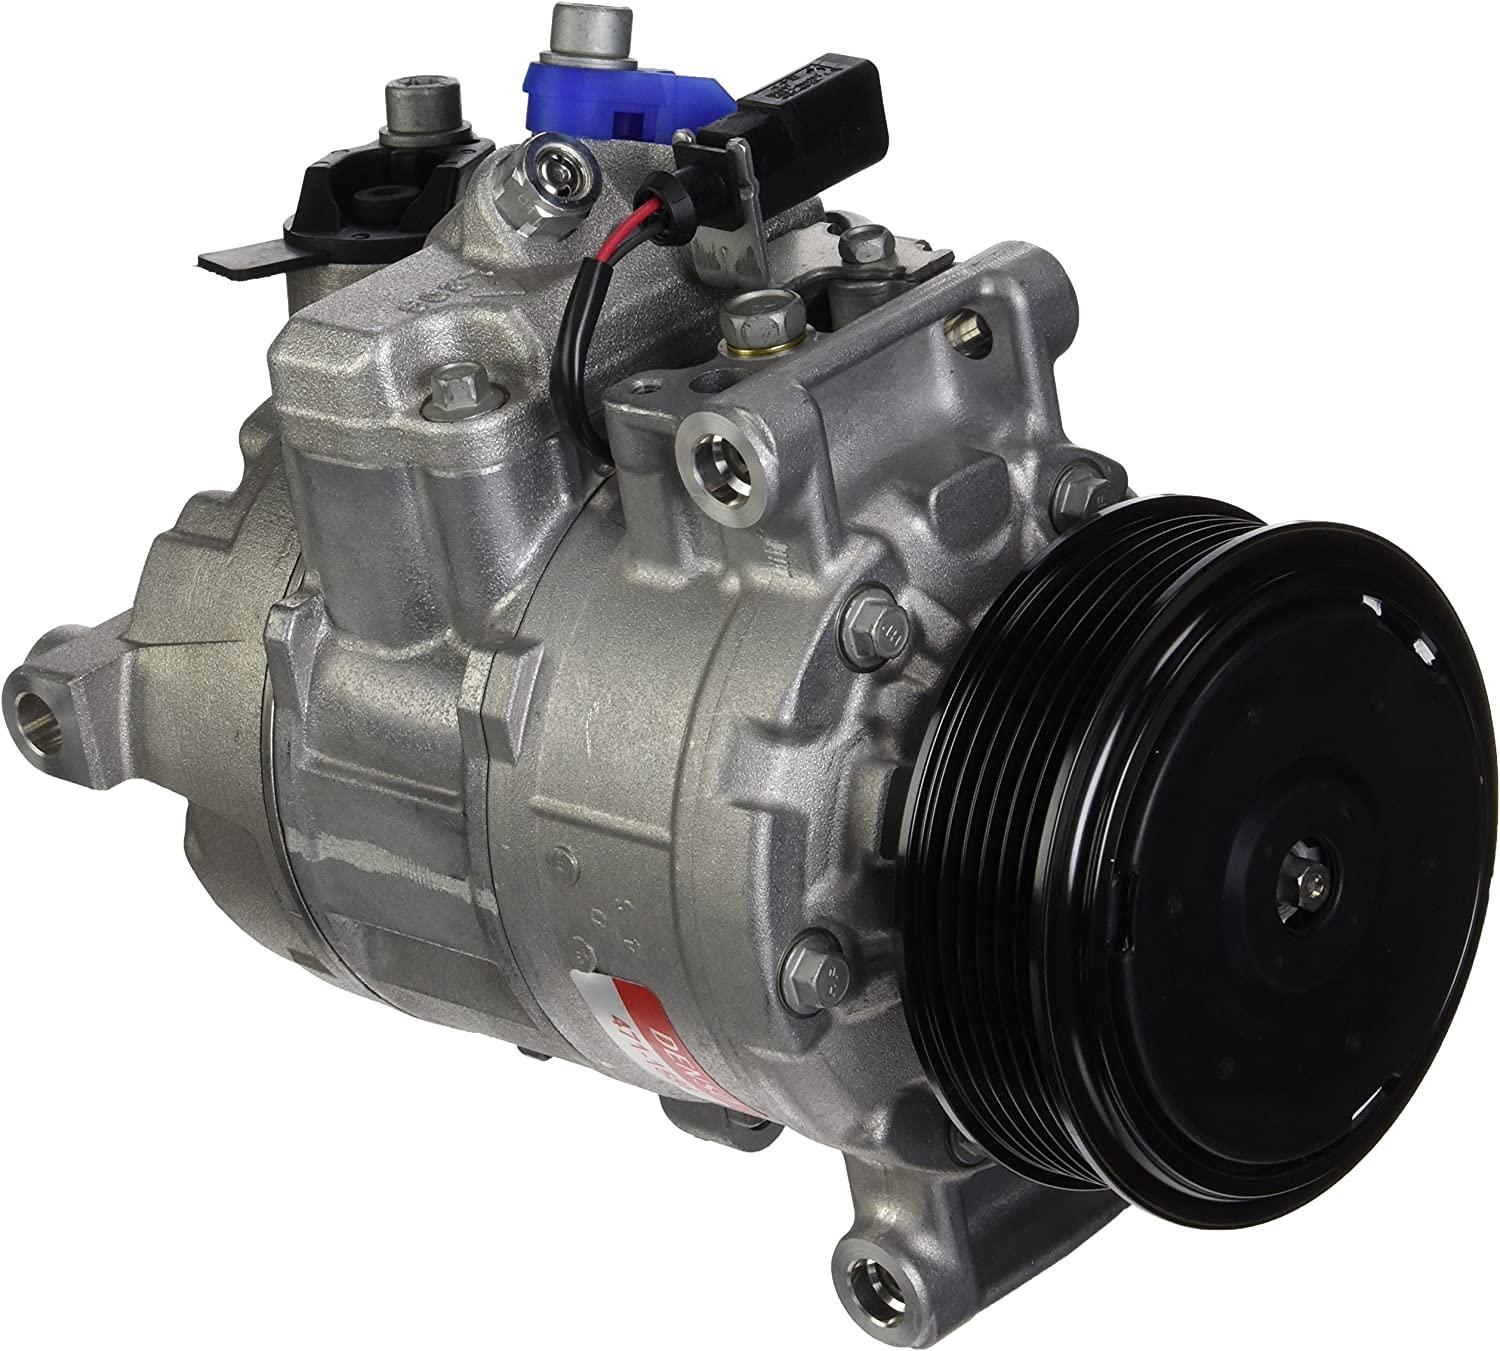 Hytec Automotive 135002 Water Pump 135002H AW9178